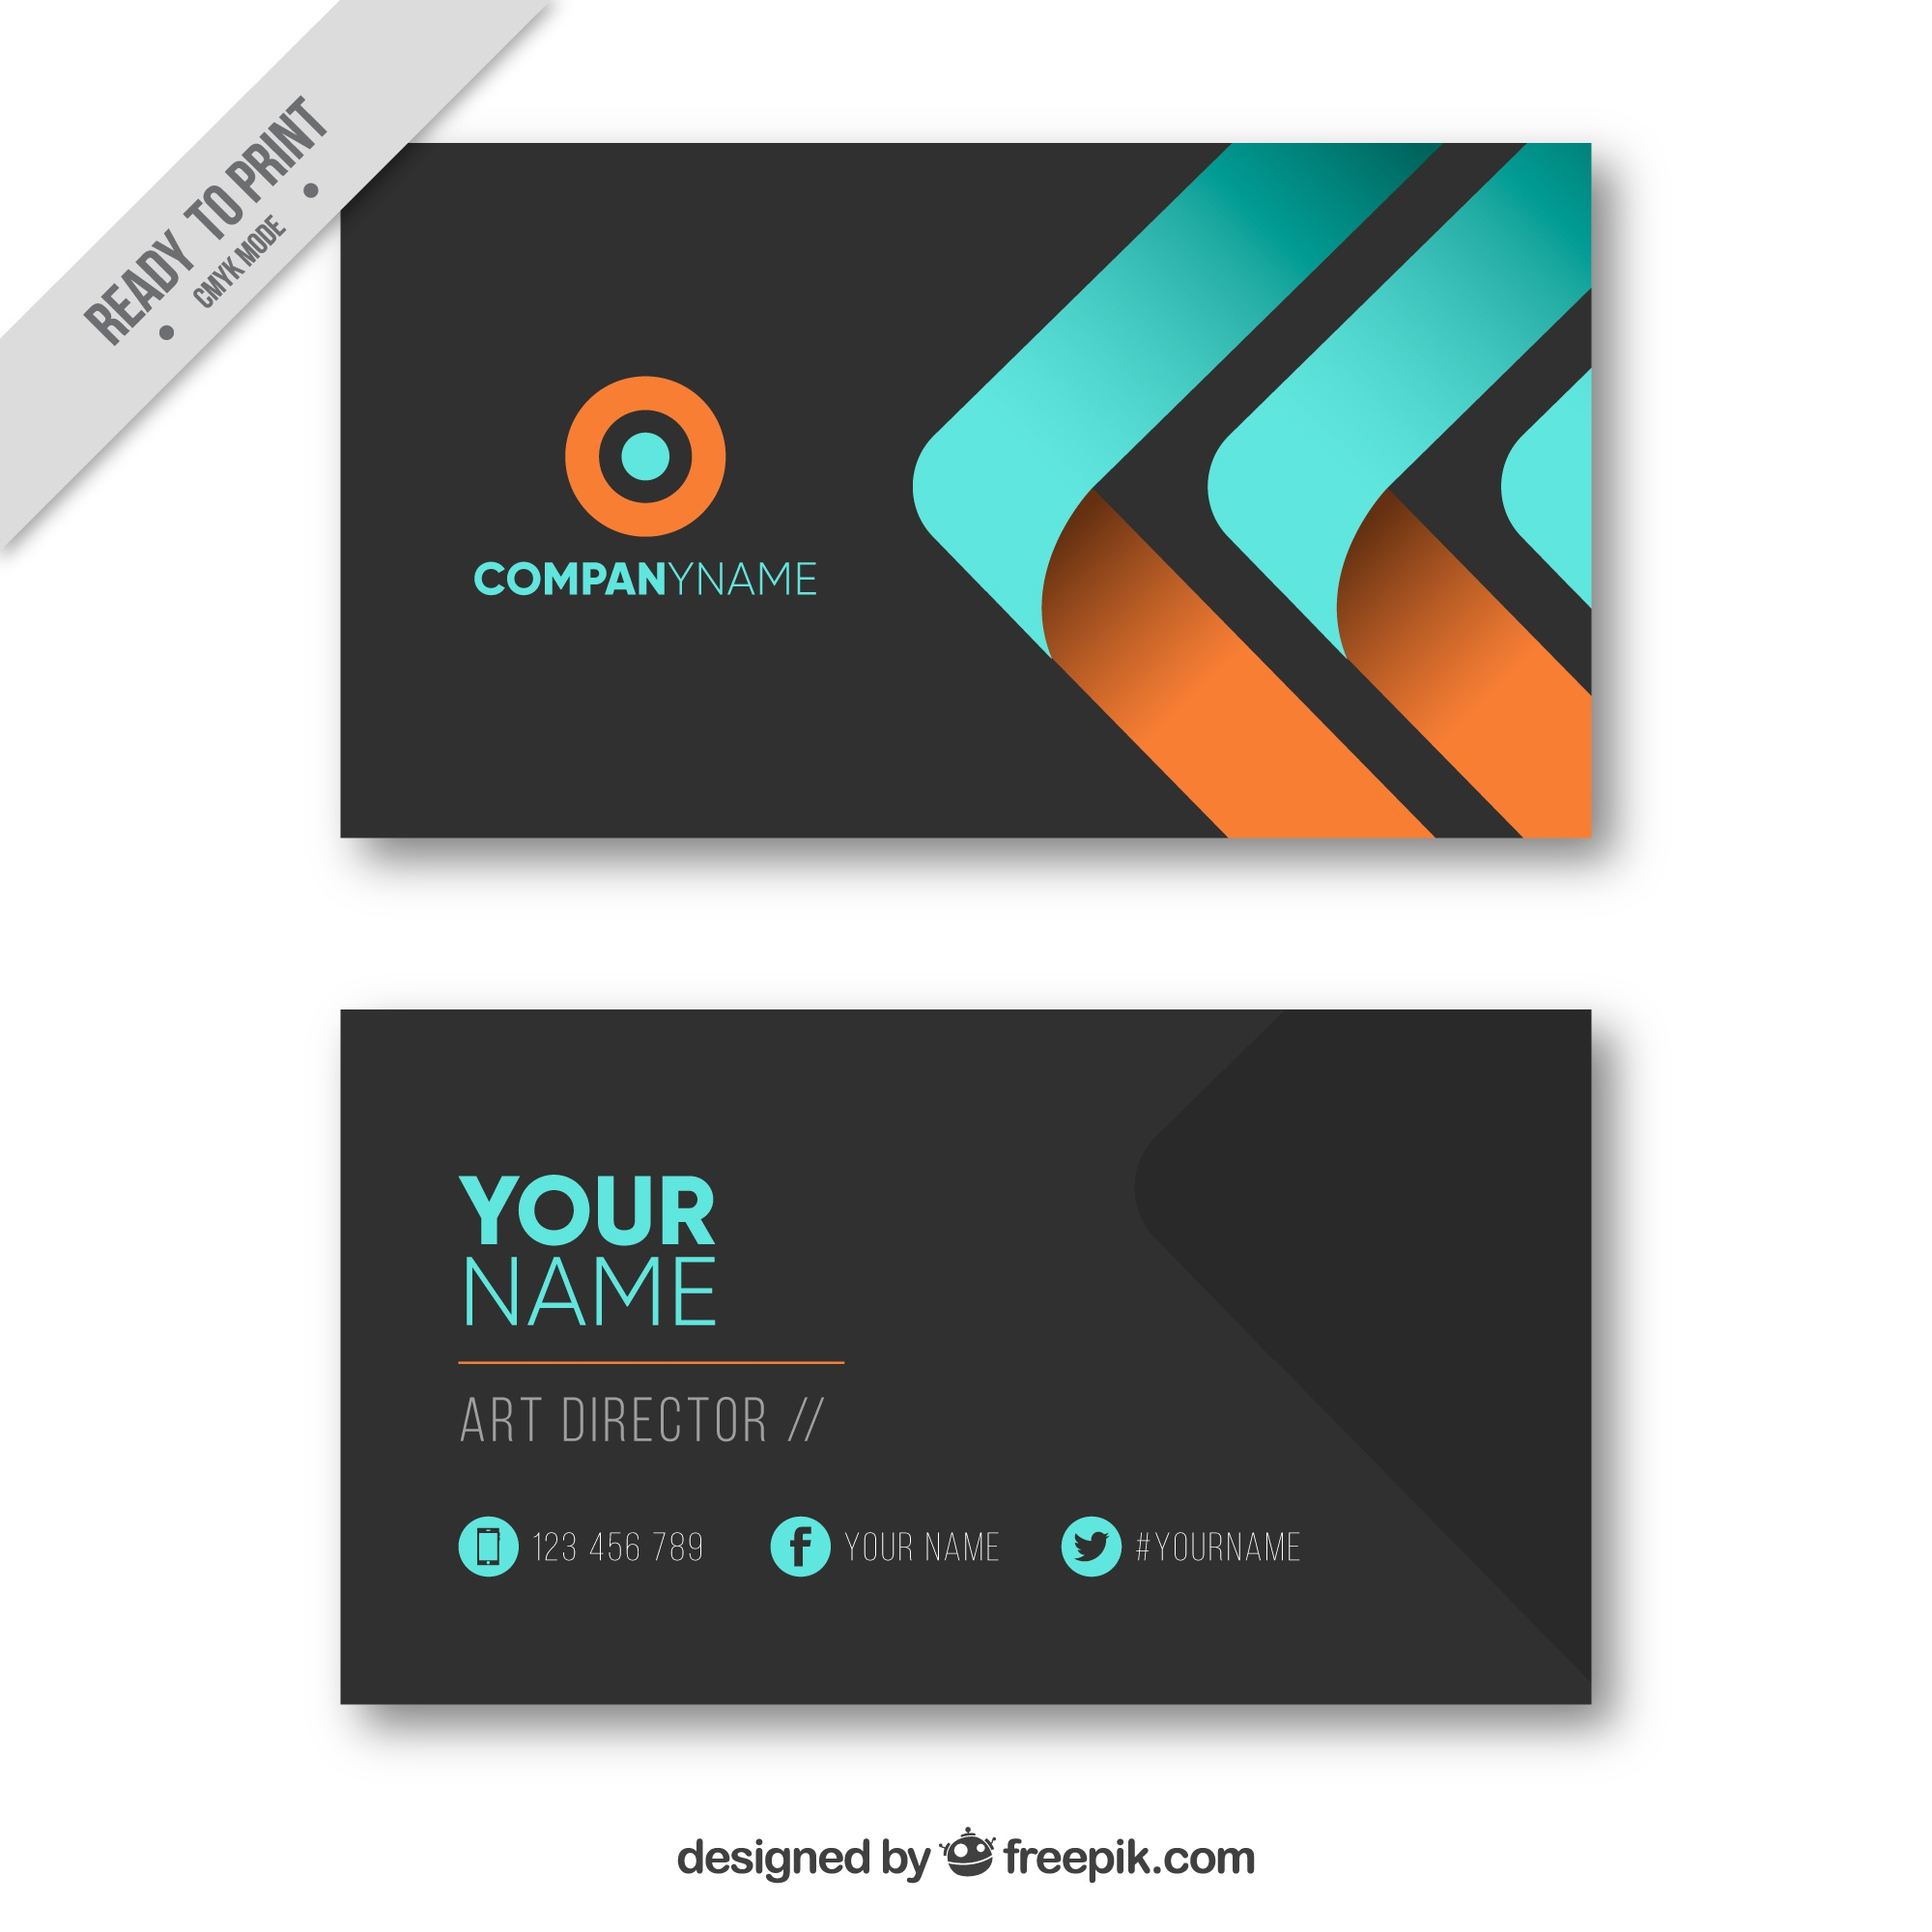 Black business card with blue and orange elements